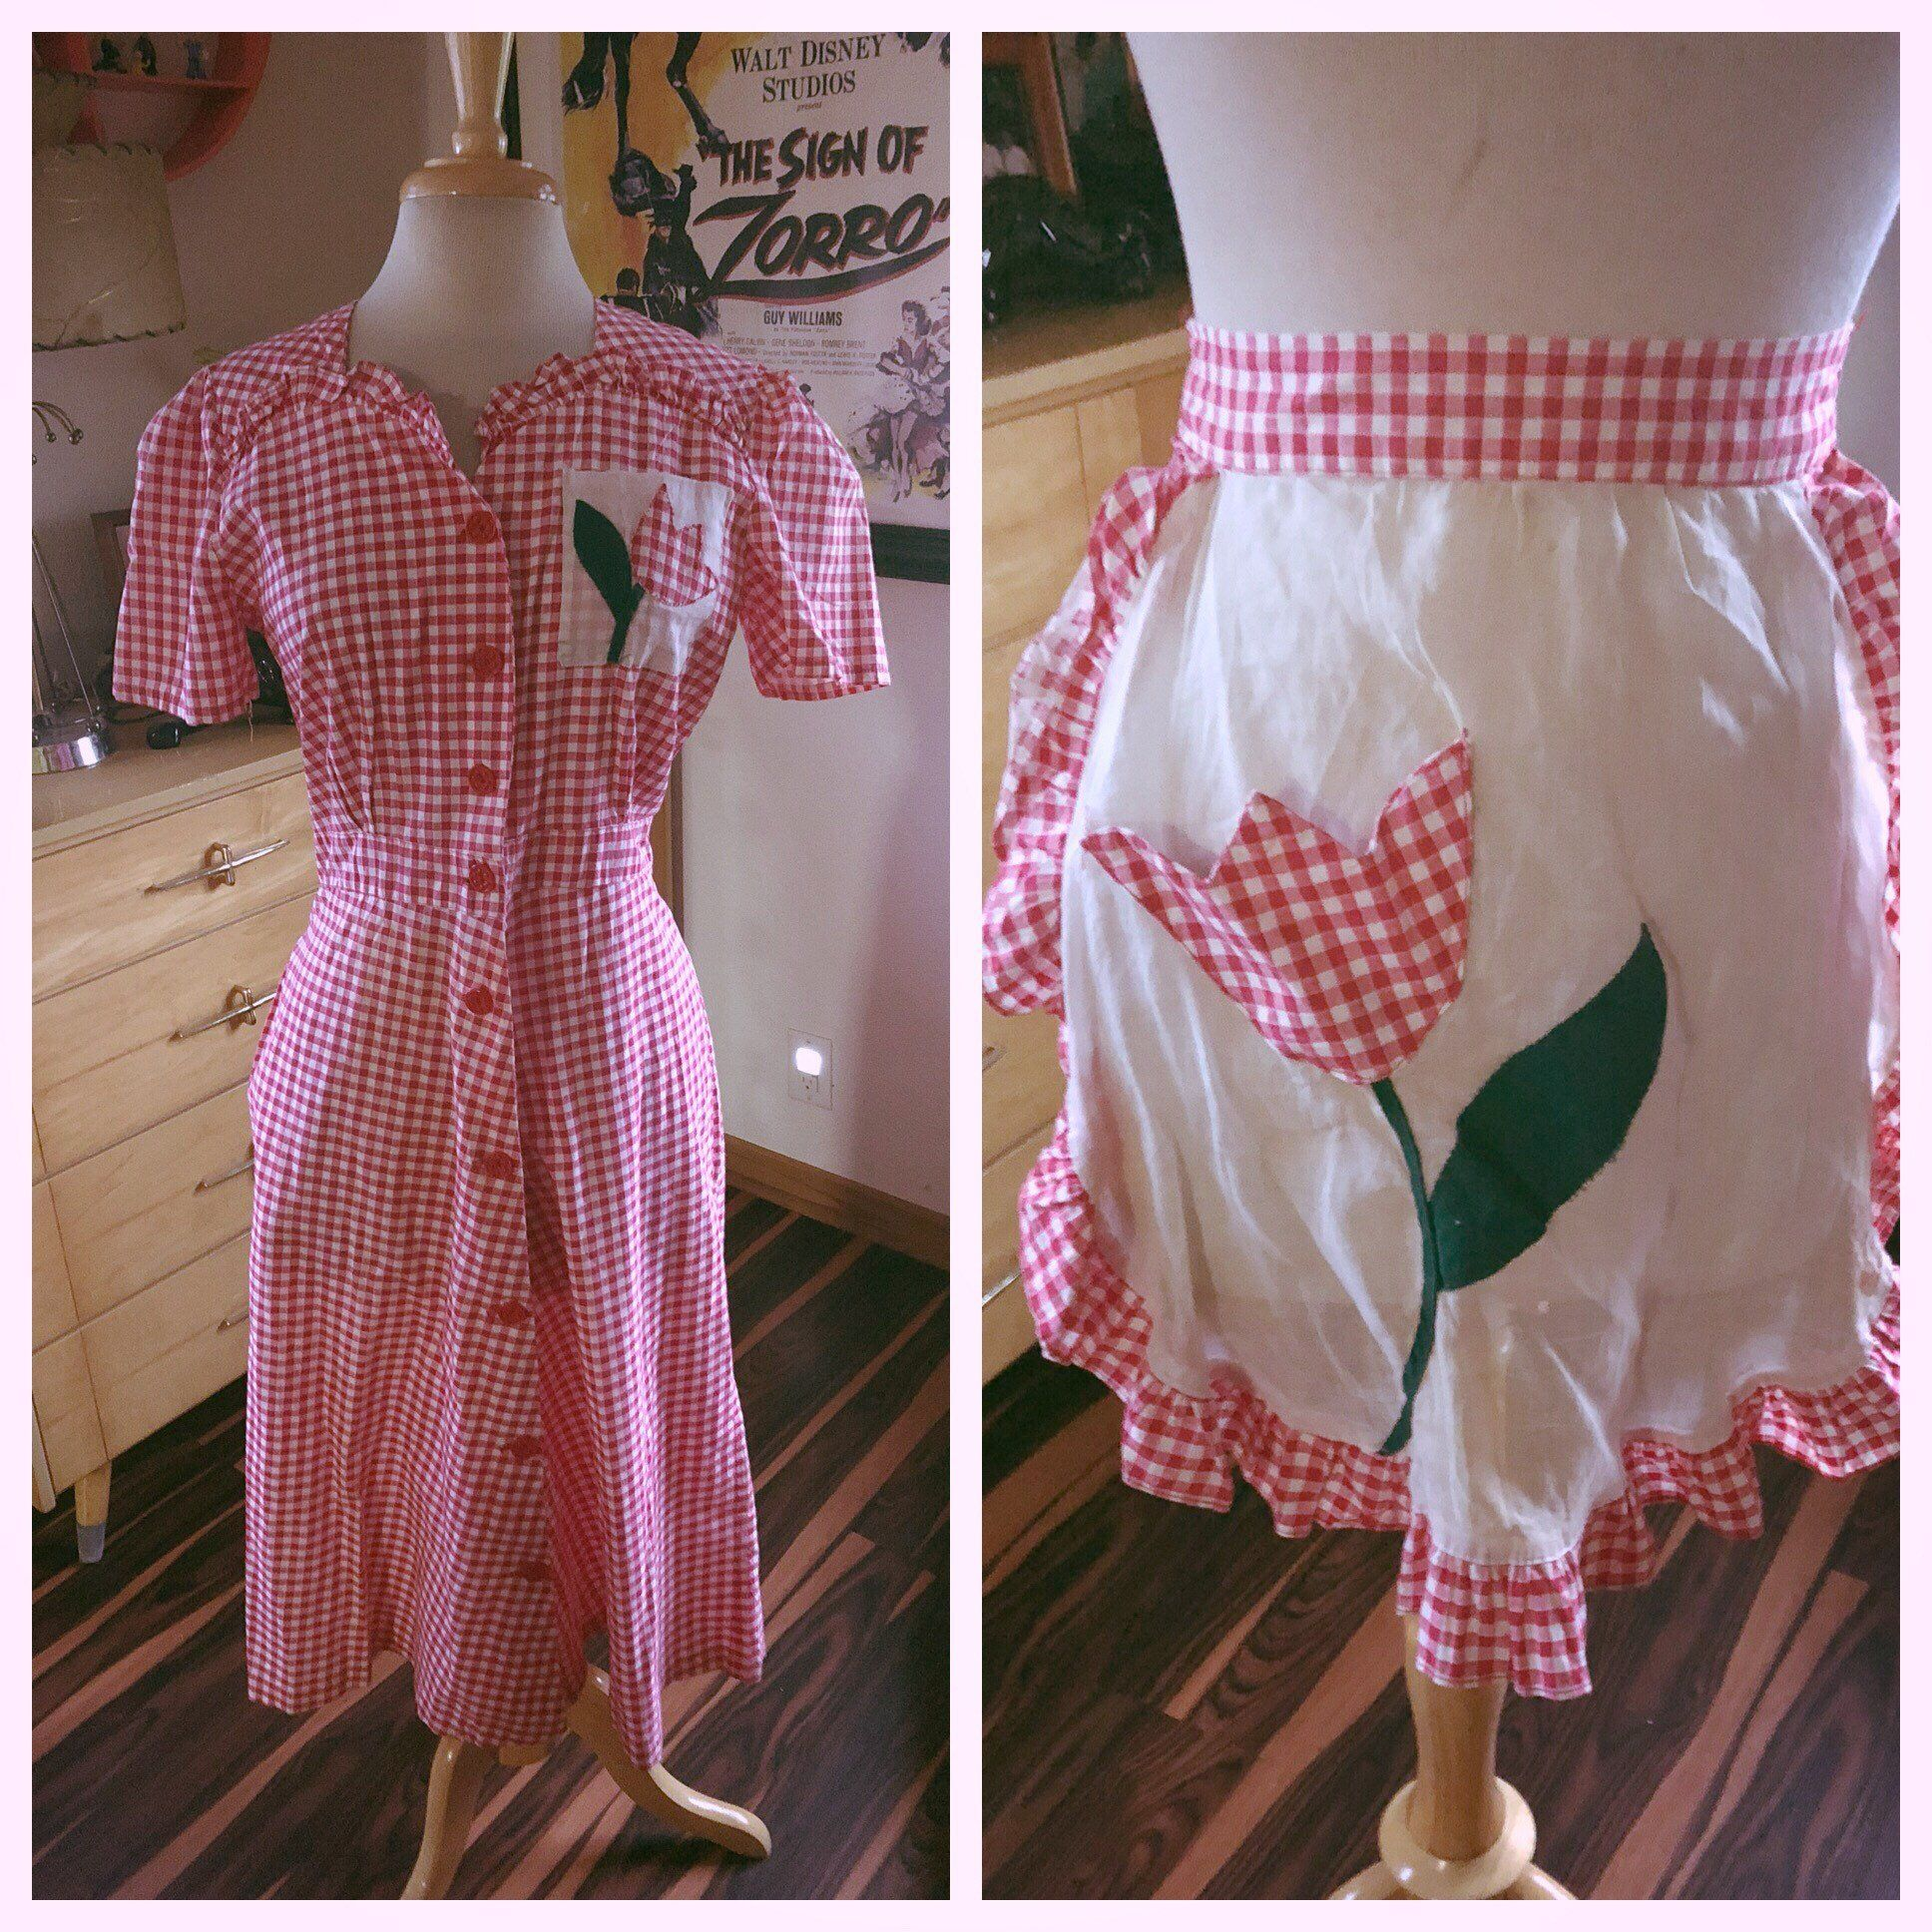 33b5b10861e3 Vintage 1940s Dress red white gingham flower matching apron Swing  Rockabilly Pinup M L Medium Large 40s by greendragonlady on Etsy